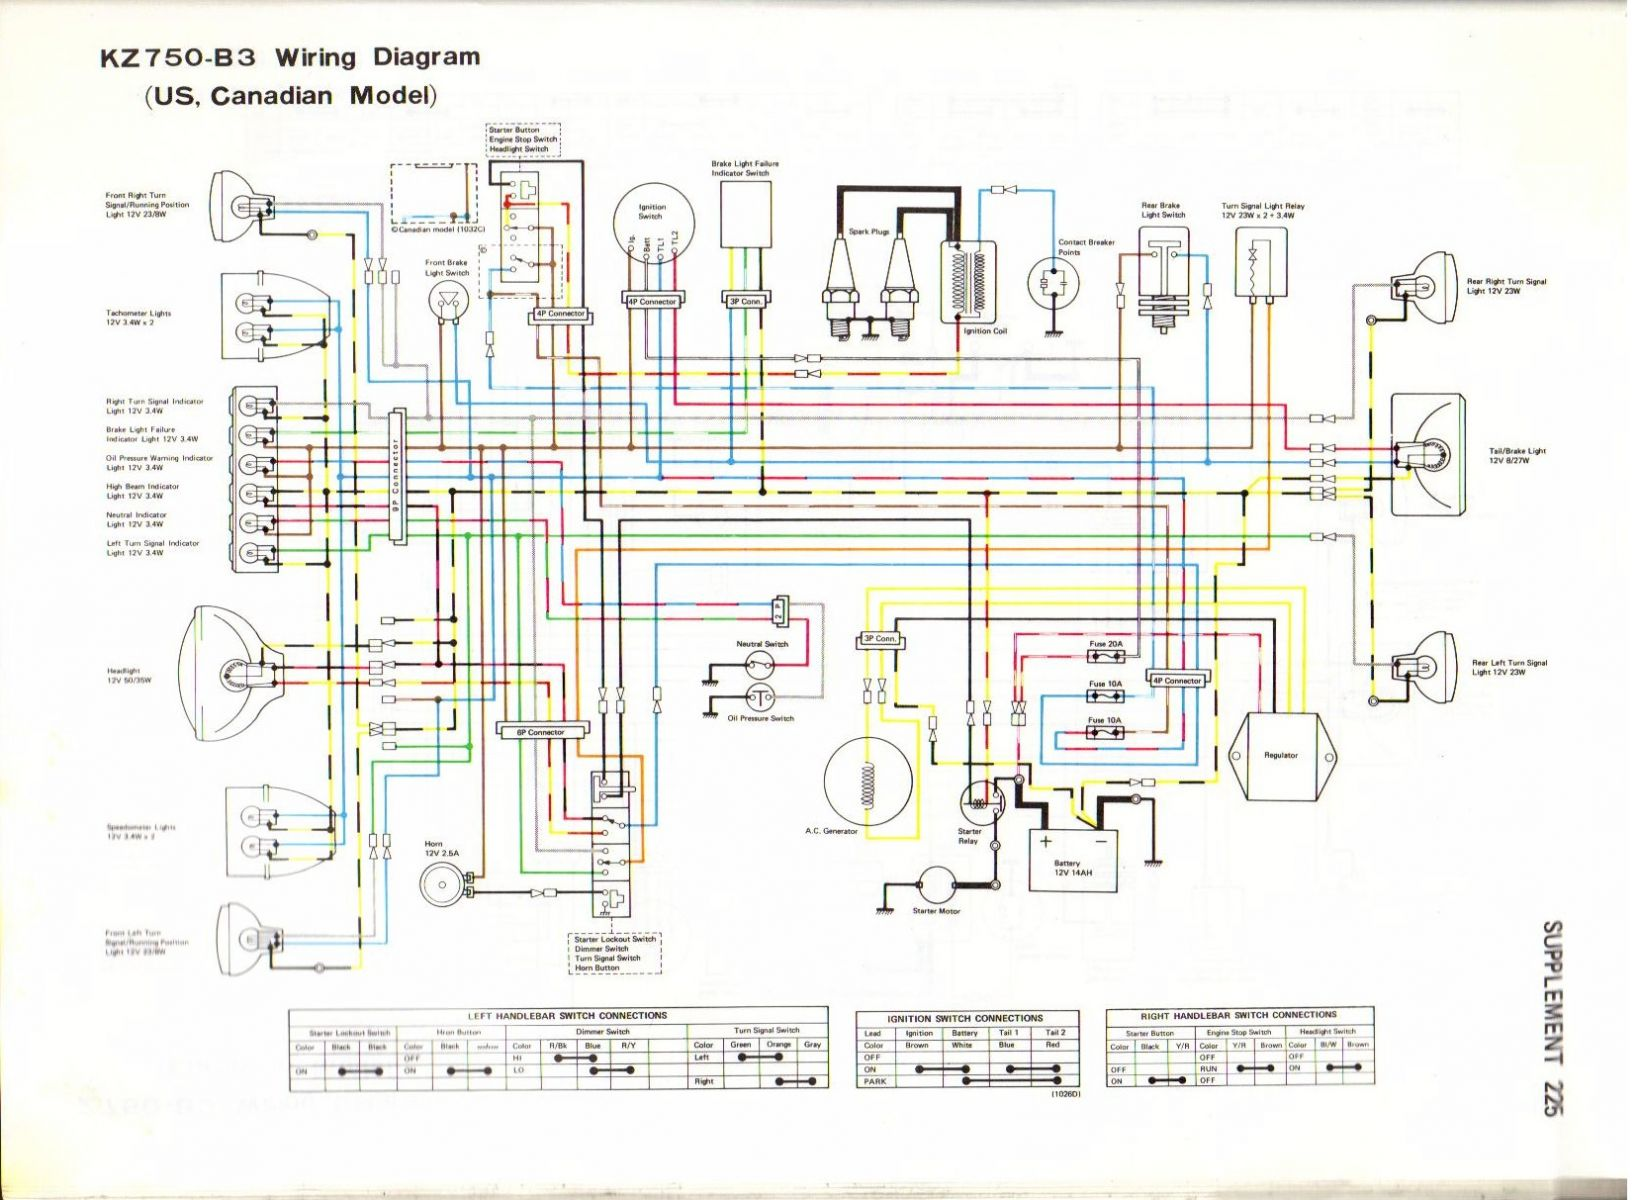 kz750b3 breaking up kzrider forum kzrider, kz, z1 & z motorcycle kz750 wiring diagram at n-0.co